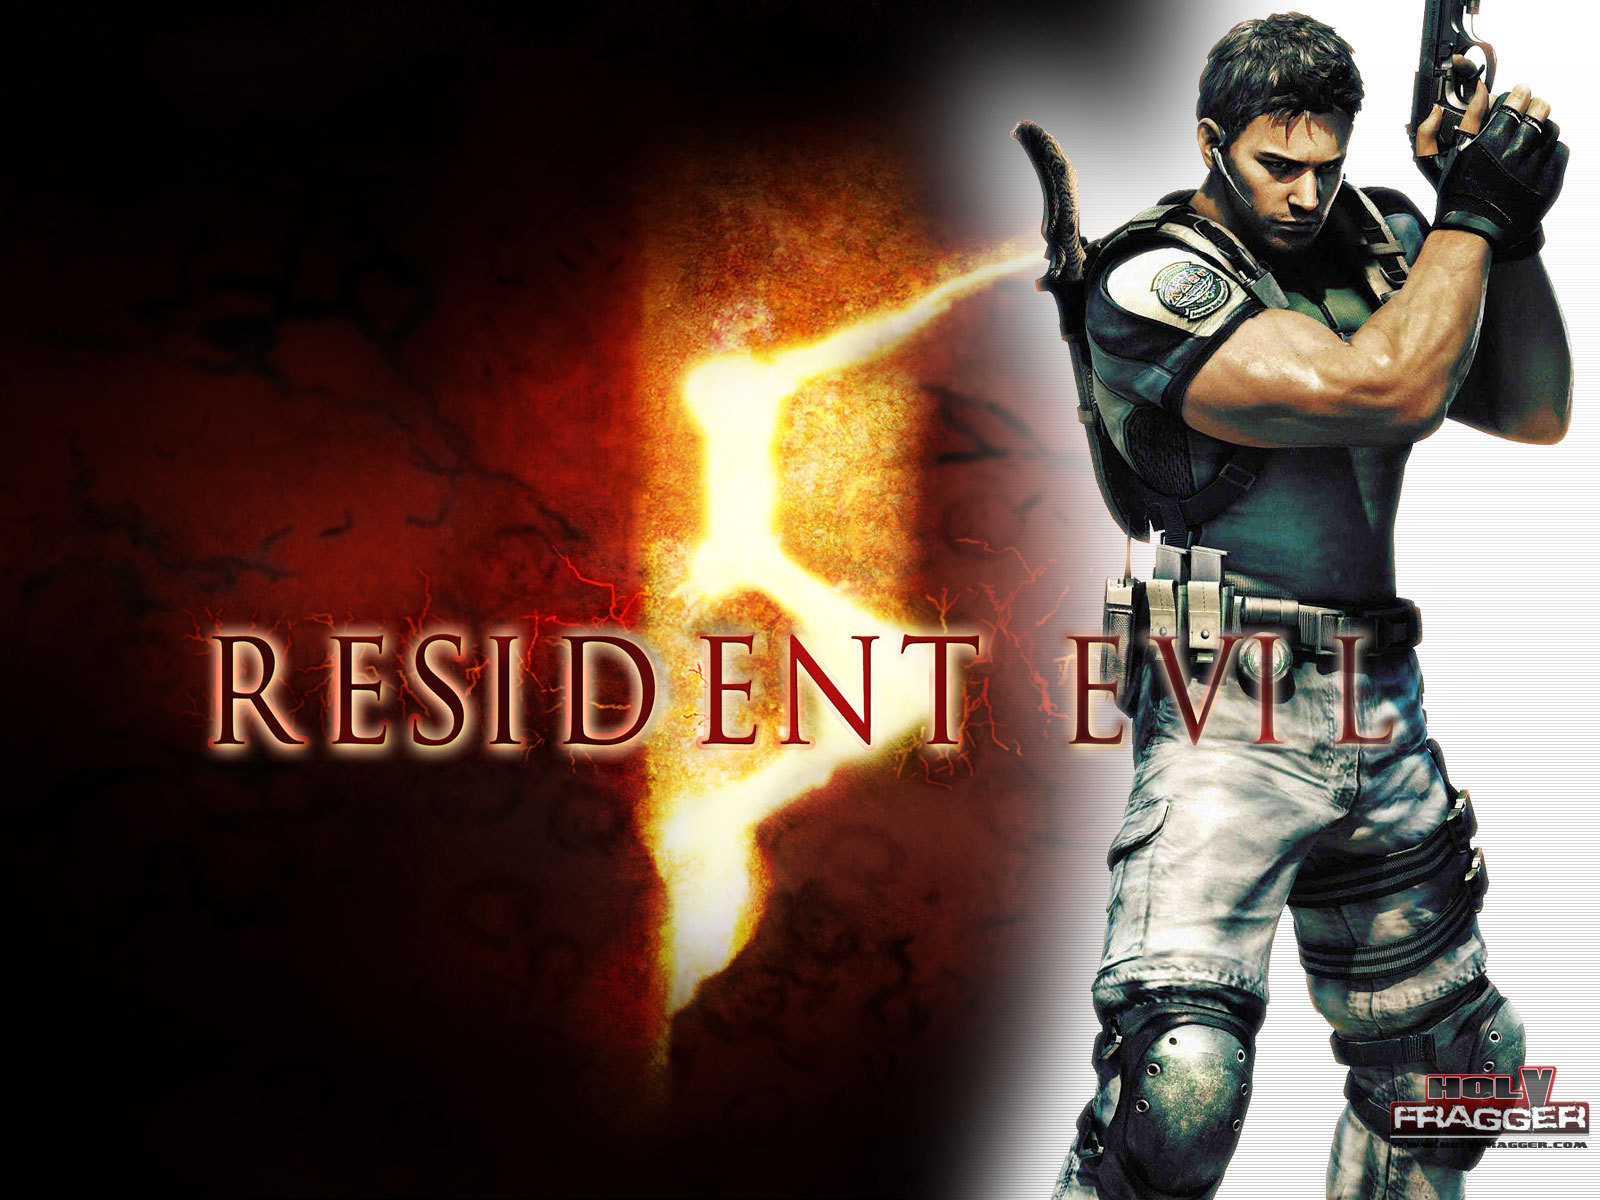 Resident Evil 5 Wallpapers #